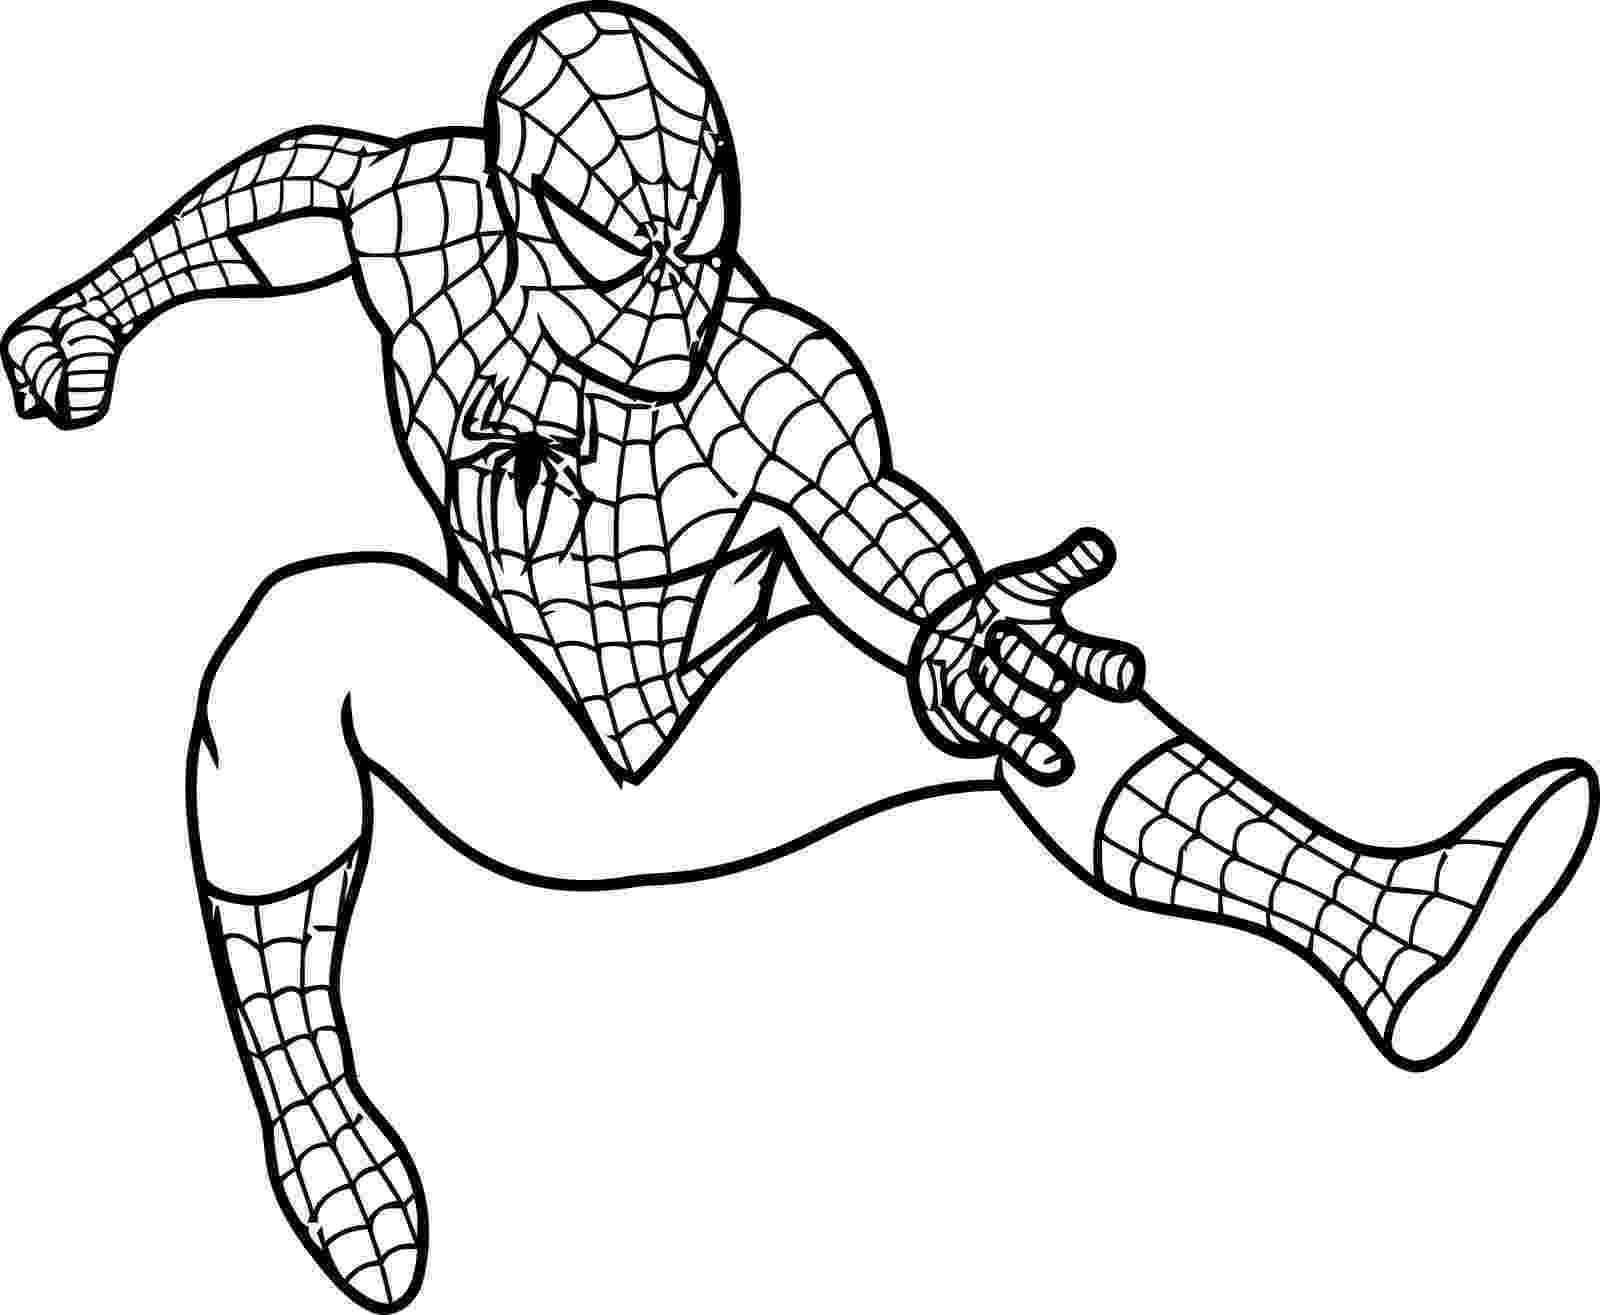 spiderman colouring pages printable coloring pages spiderman free printable coloring pages spiderman printable pages colouring